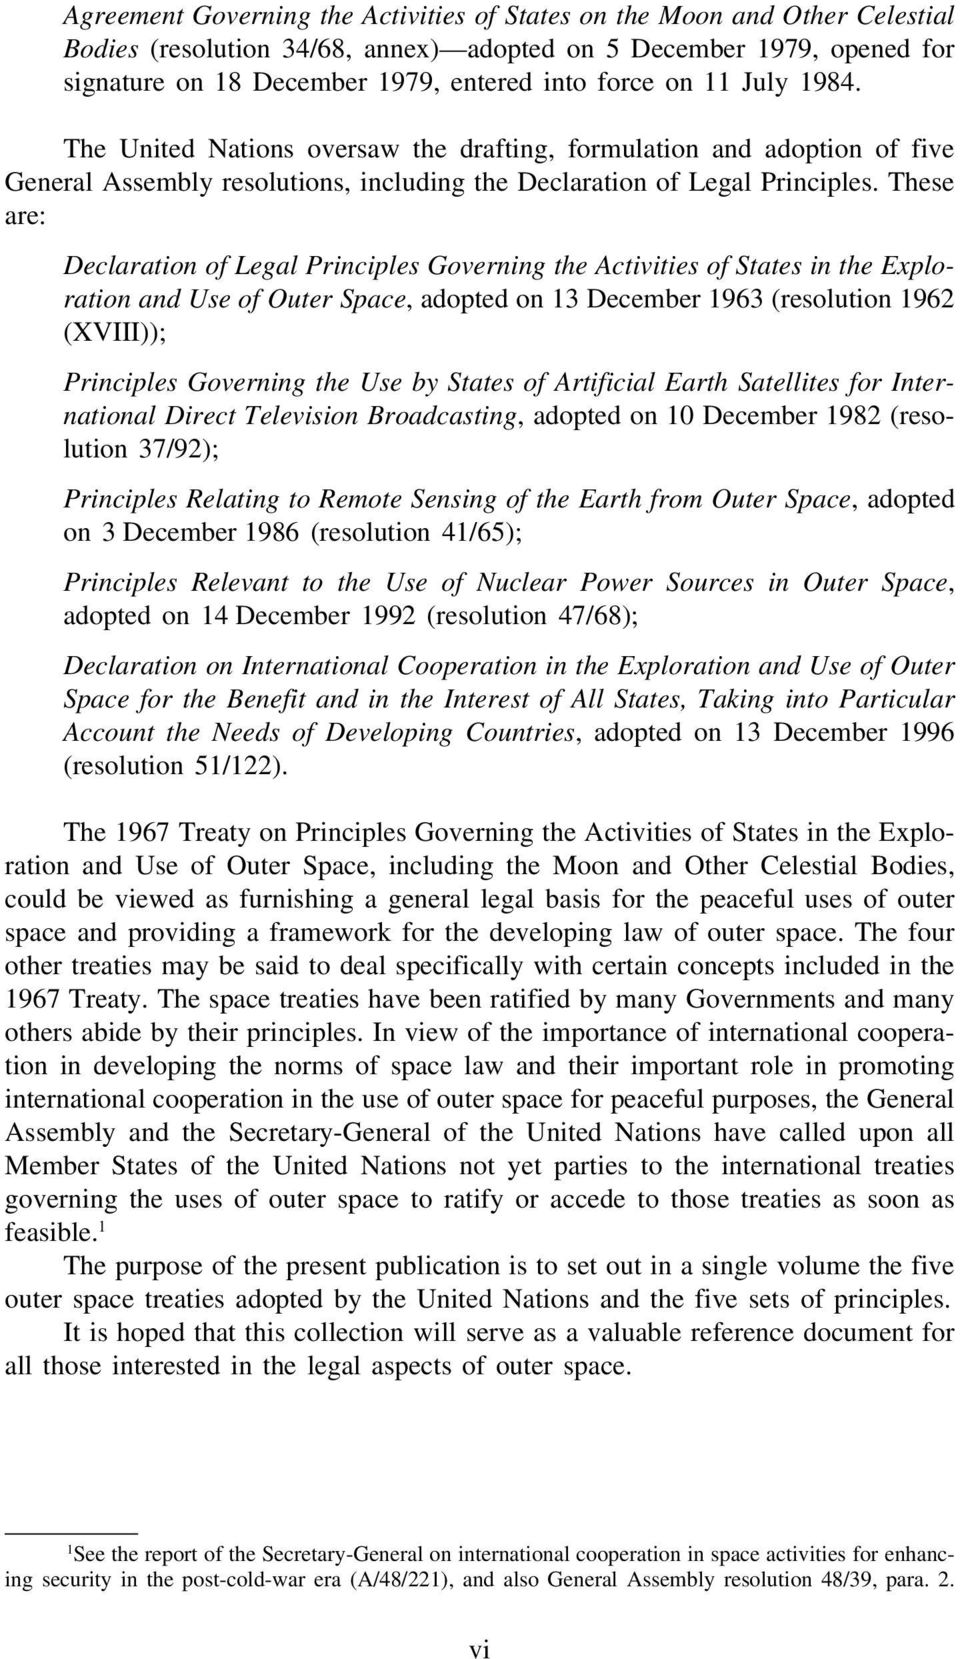 These are: Declaration of Legal Principles Governing the Activities of States in the Exploration and Use of Outer Space, adopted on 13 December 1963 (resolution 1962 (XVIII)); Principles Governing